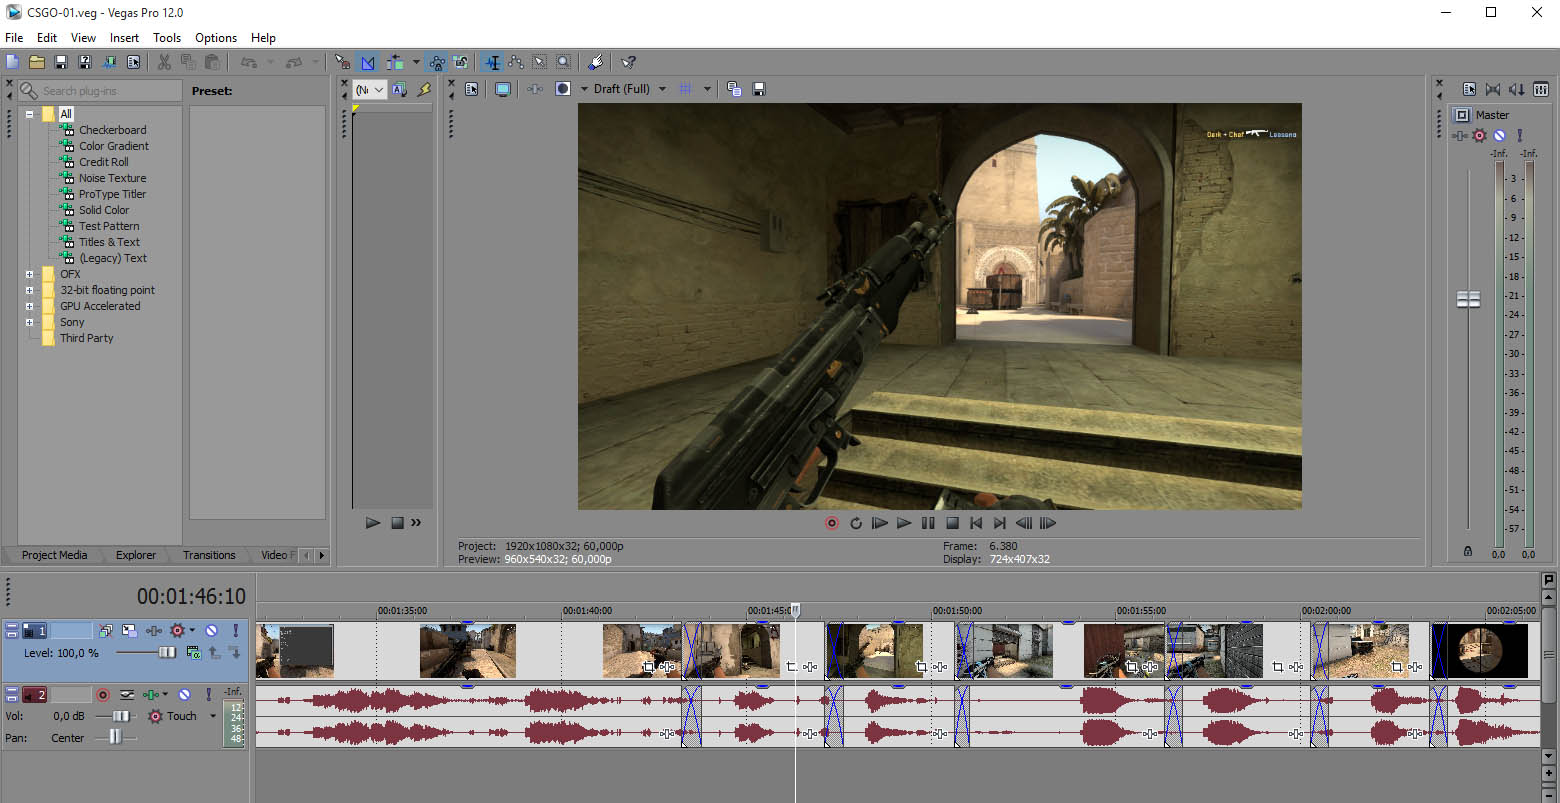 CS:GO Video Making Tutorial from DEMO / Replay Files - 2